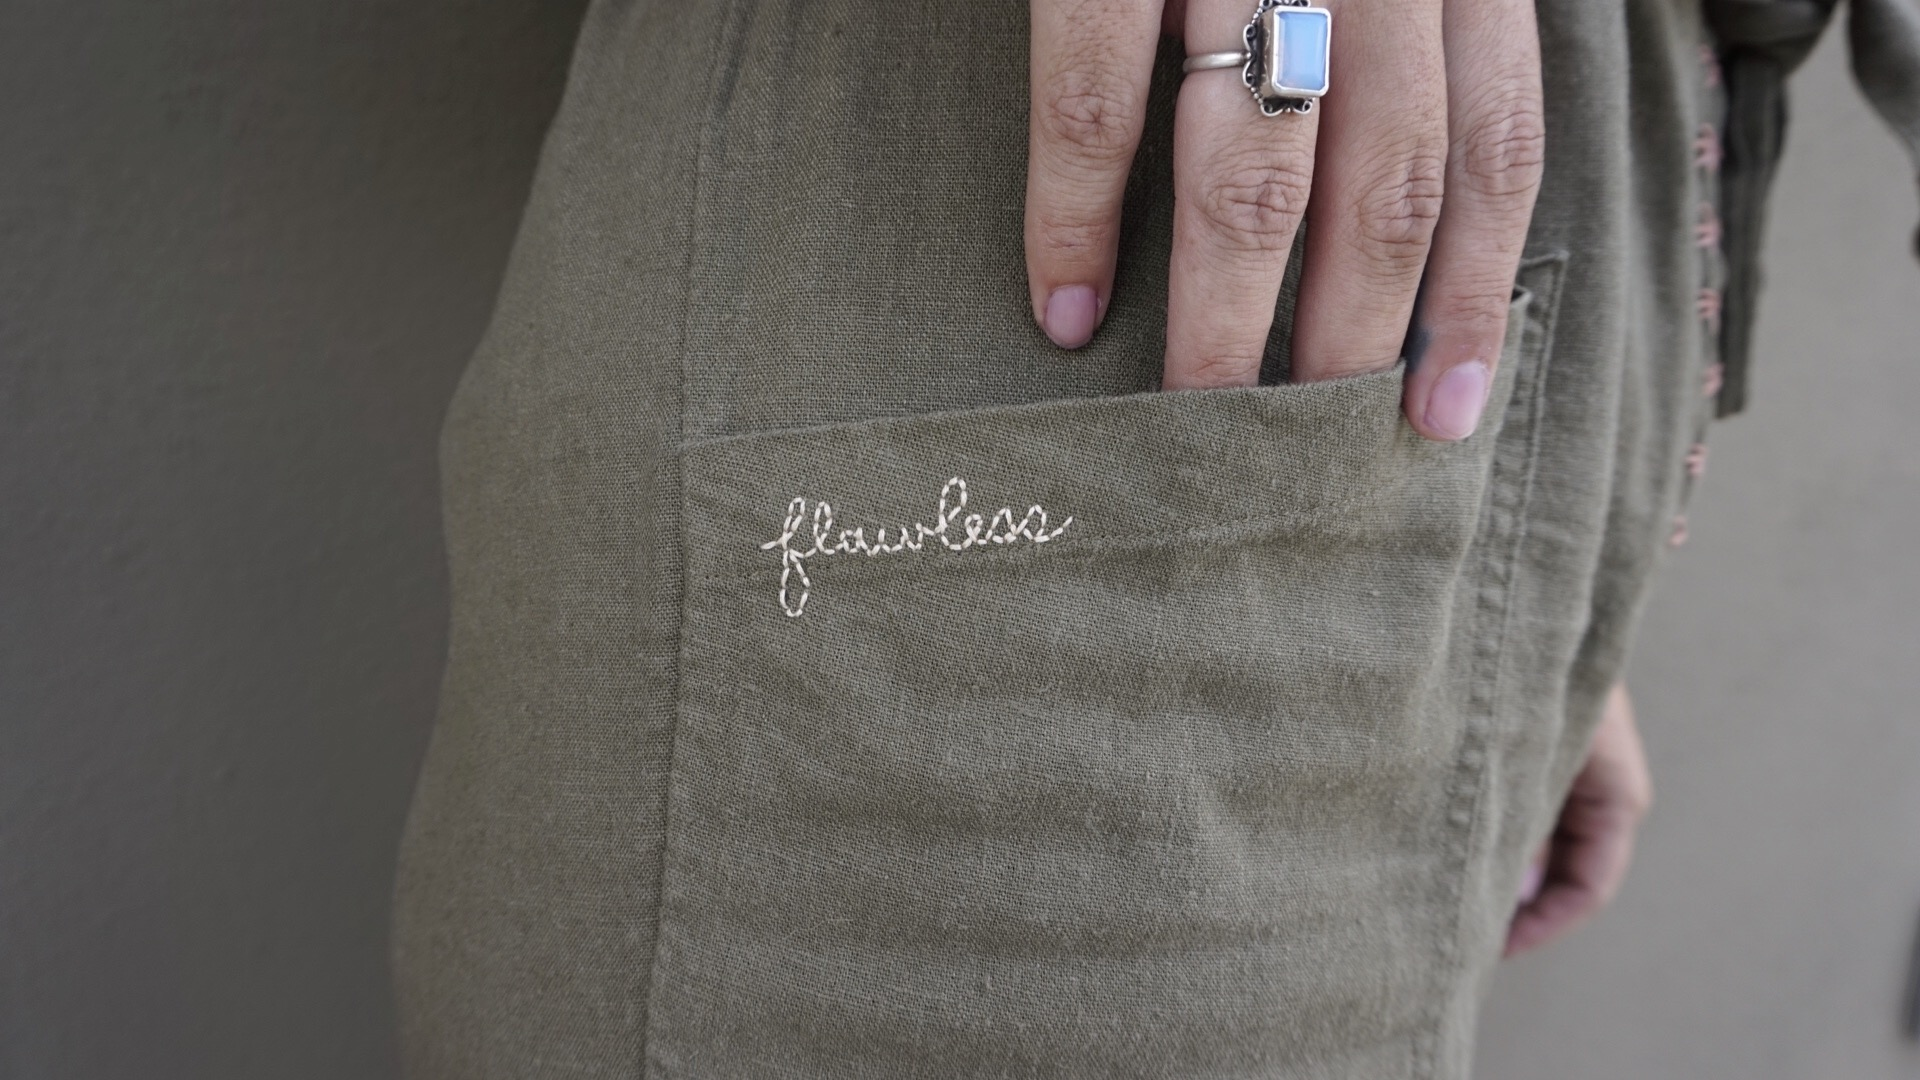 flawless embroidery tutorial